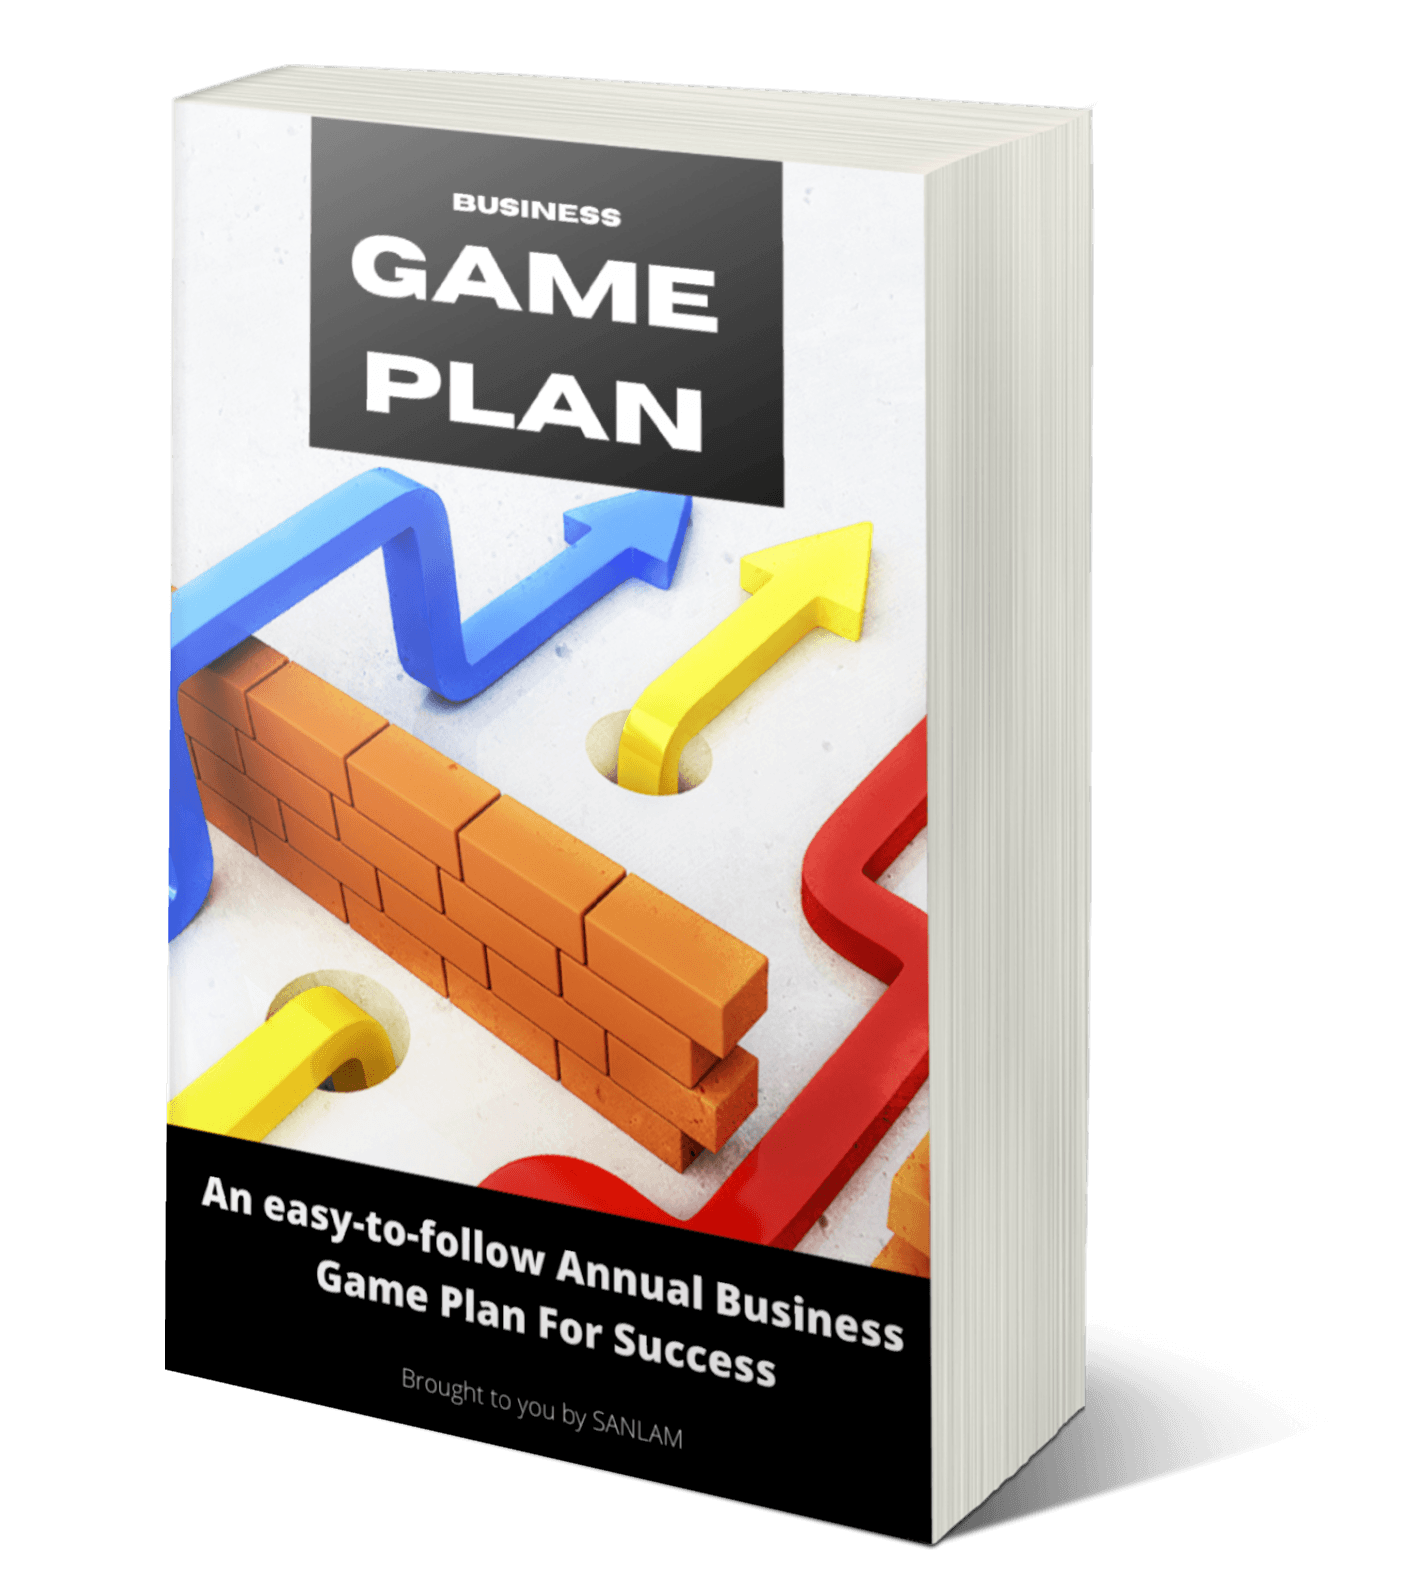 Business Annual Game Plan For Success